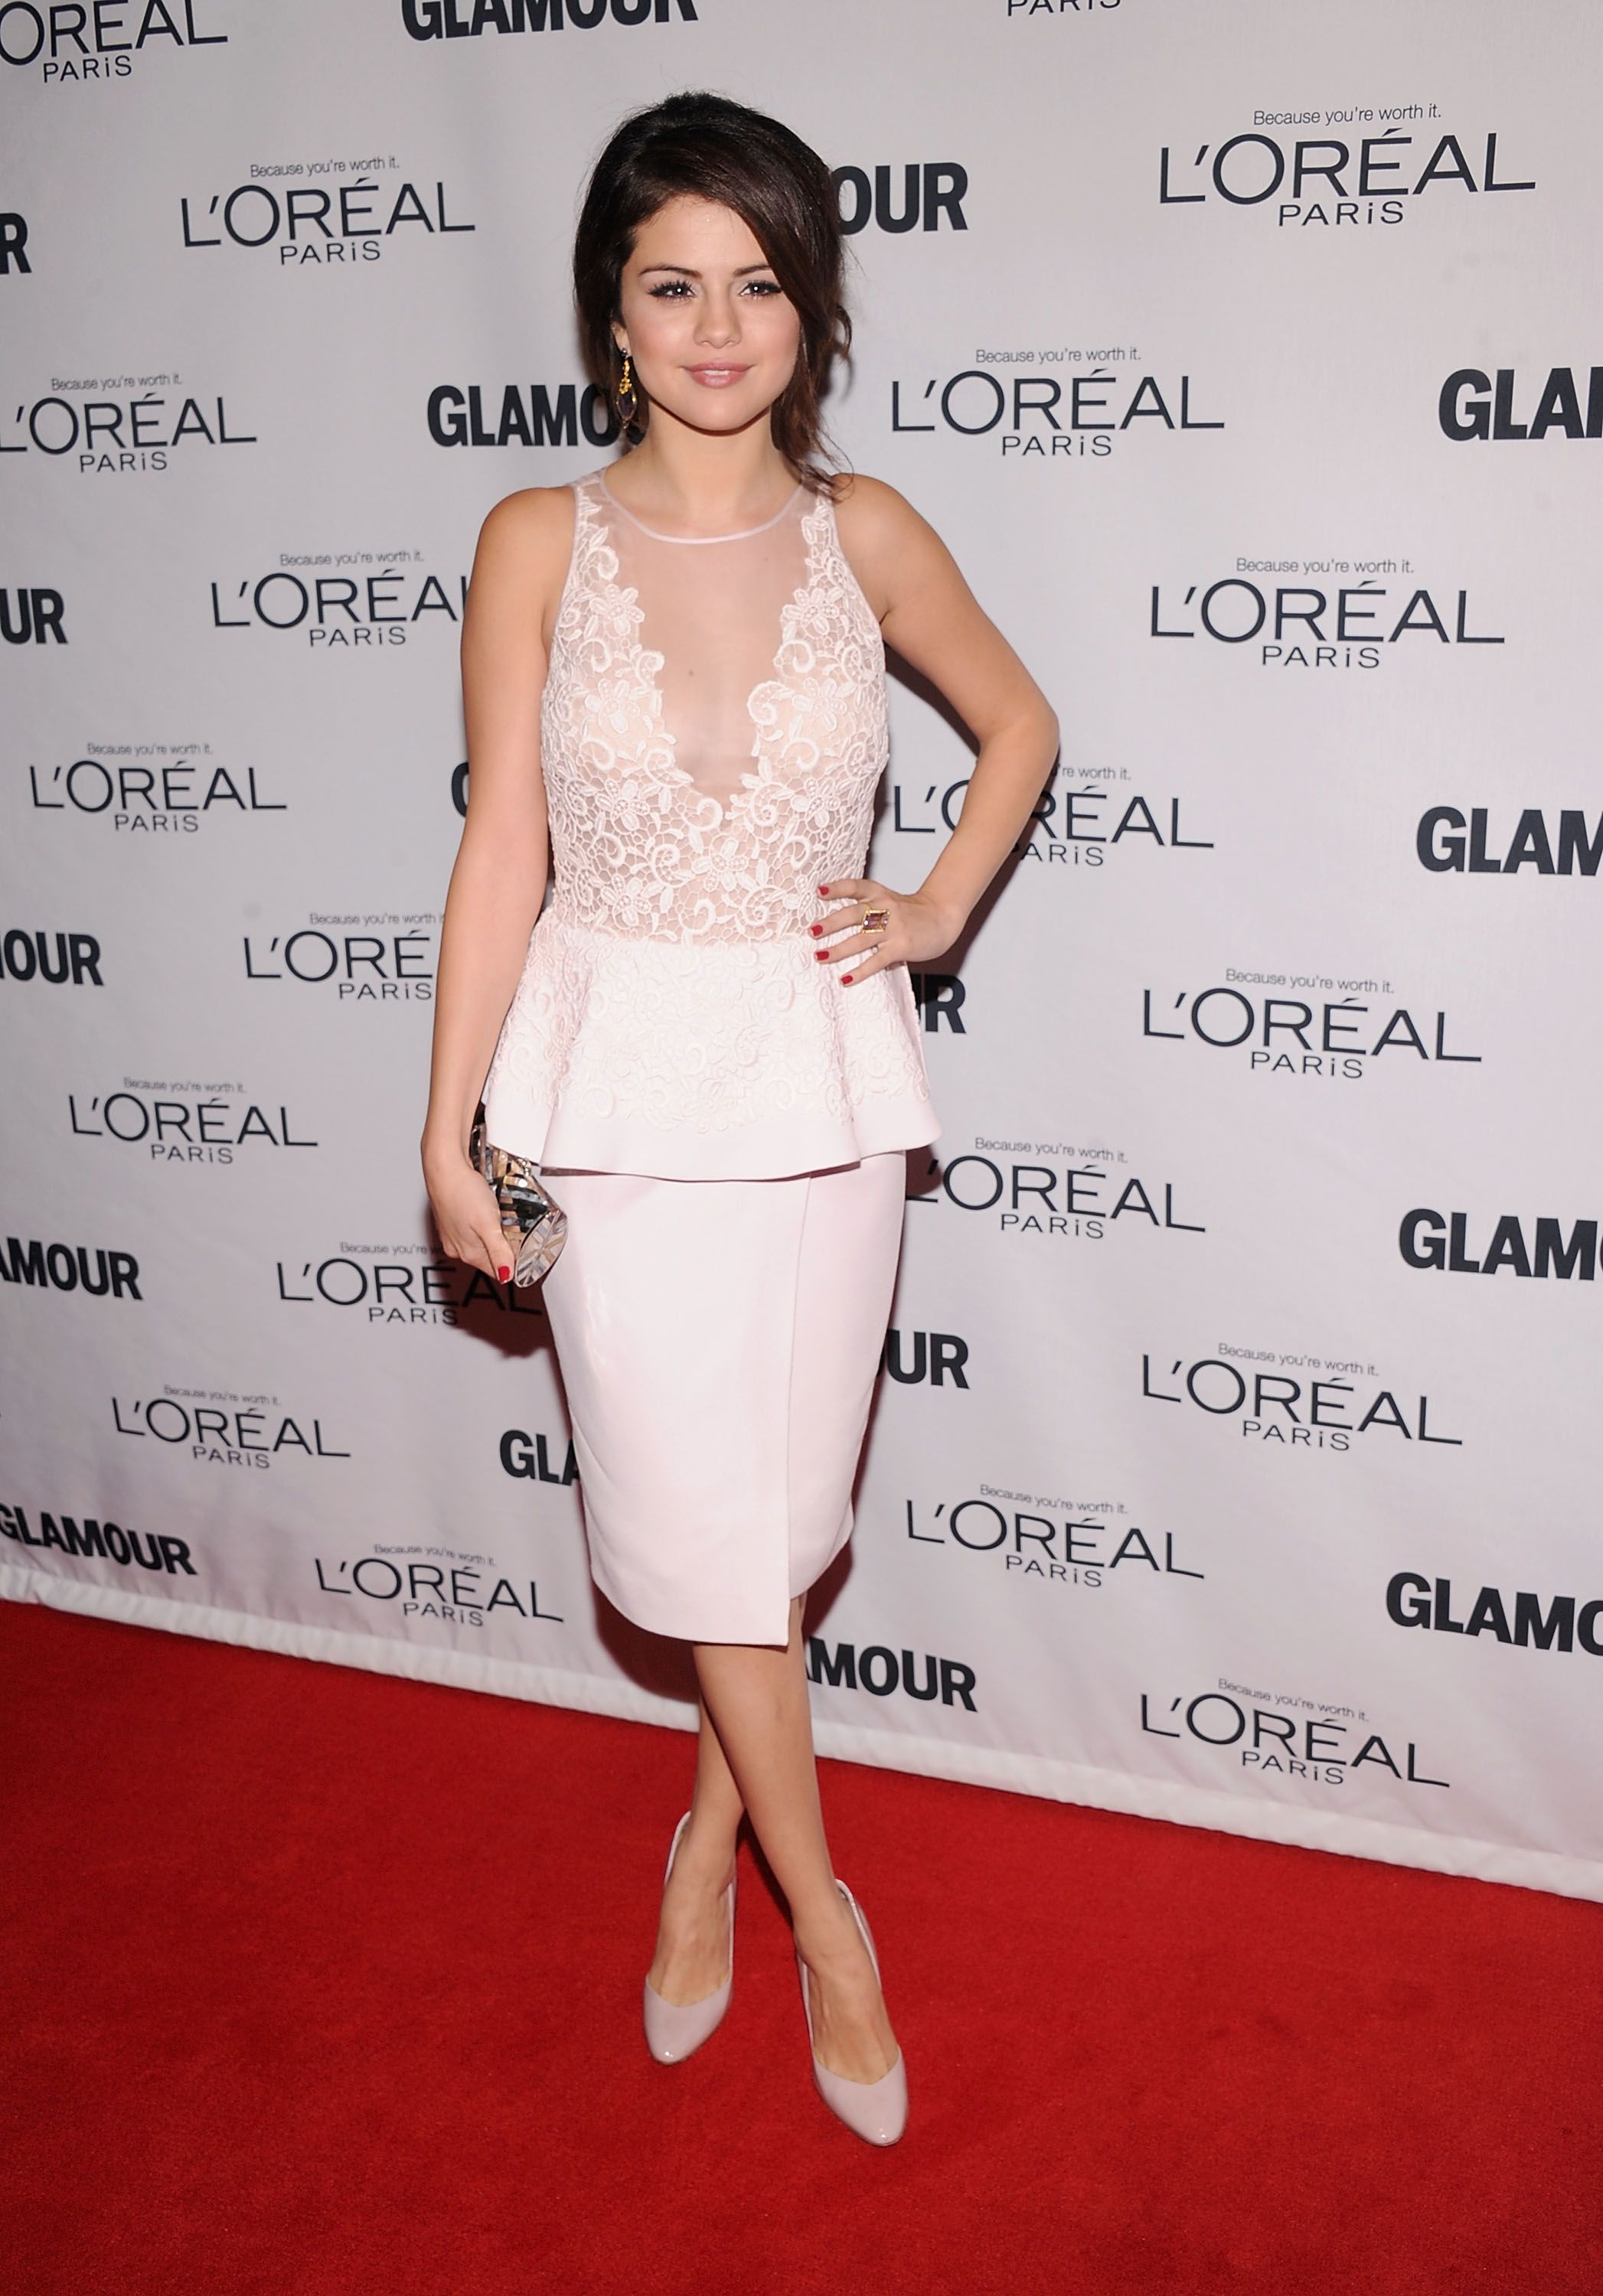 Selena Gomez on the Red carpet in style